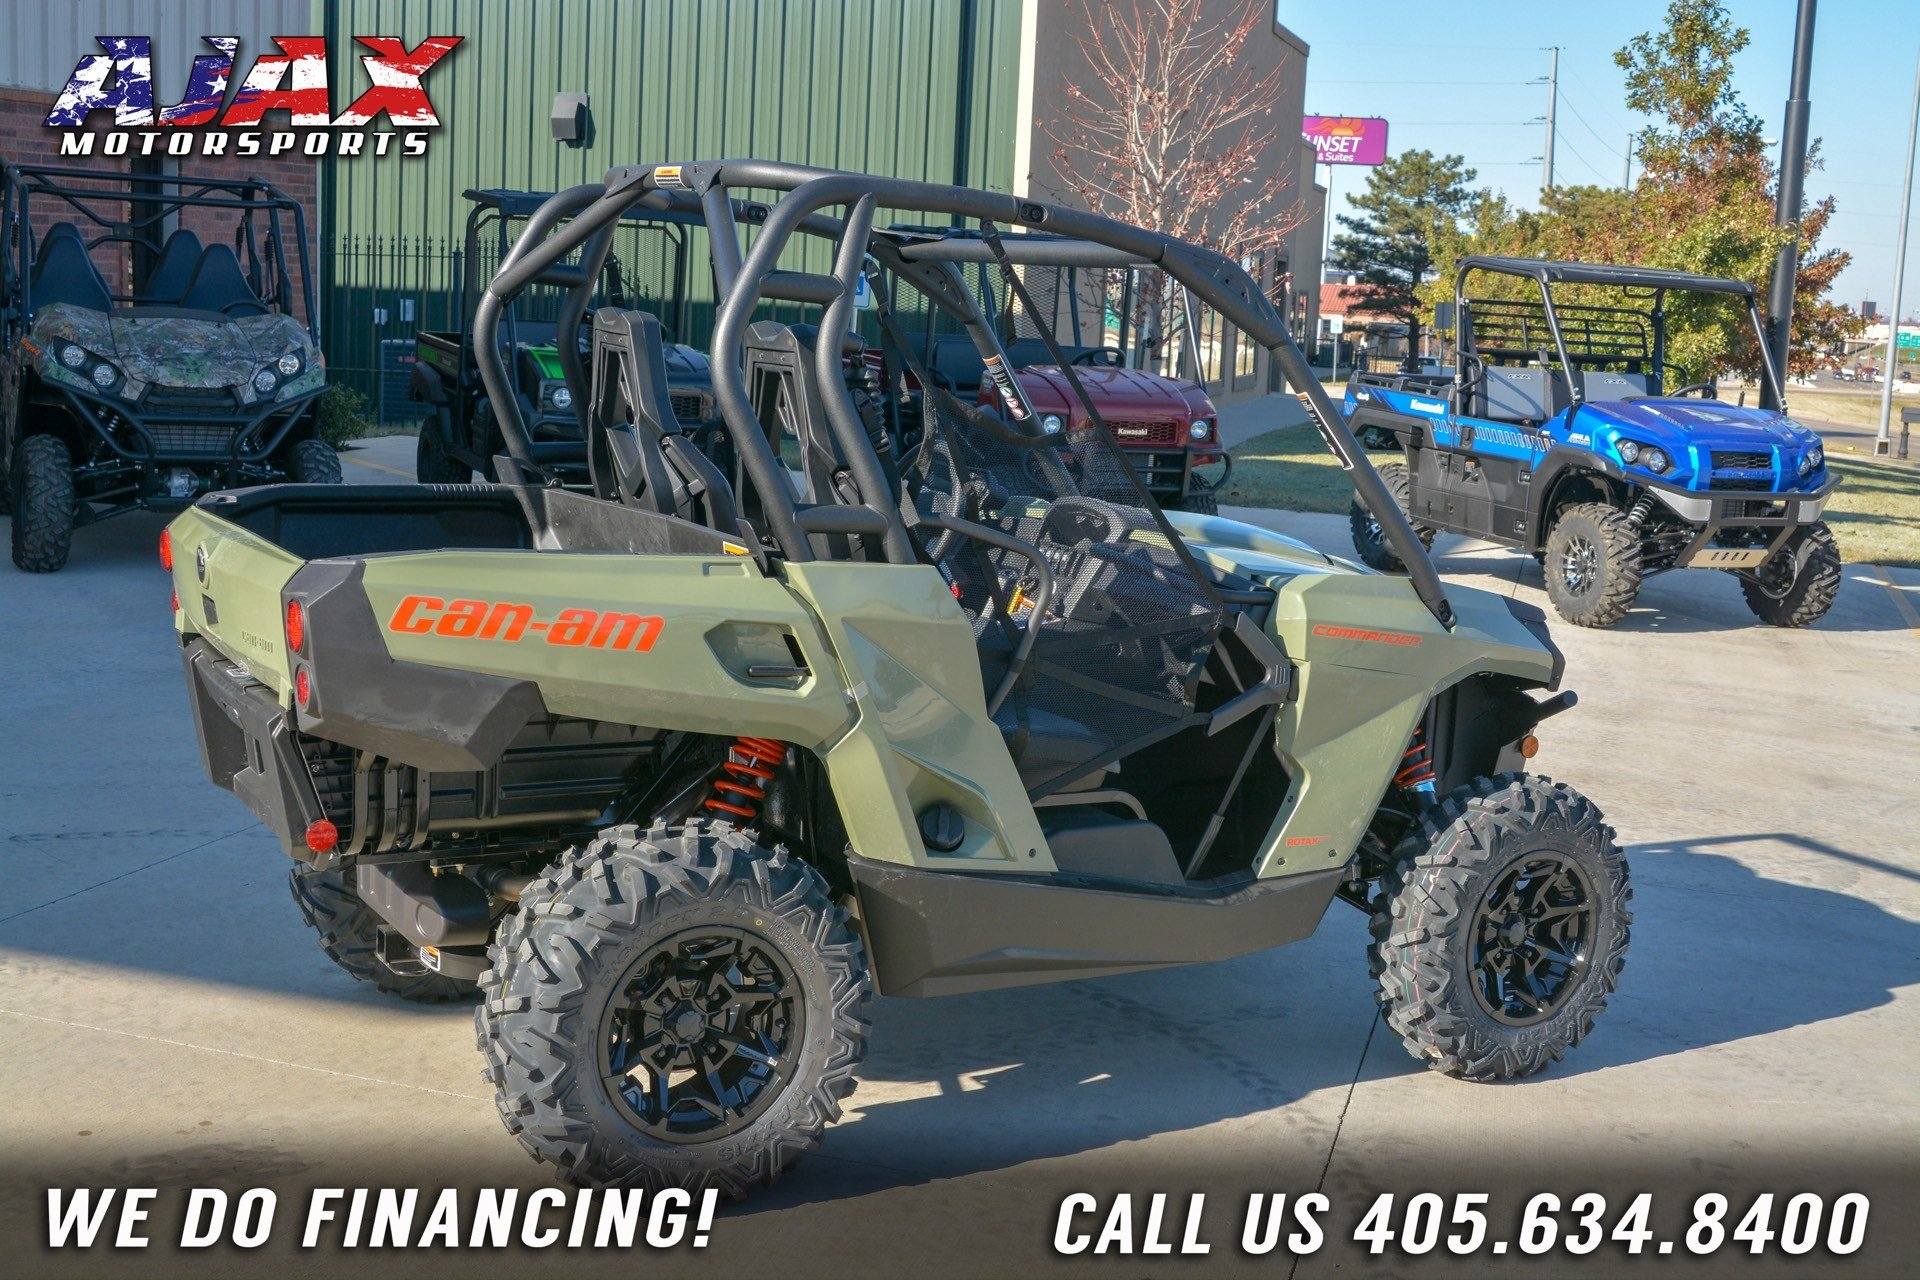 New 2019 Can Am Commander Dps 800r Utility Vehicles In Oklahoma City Fuel Filter